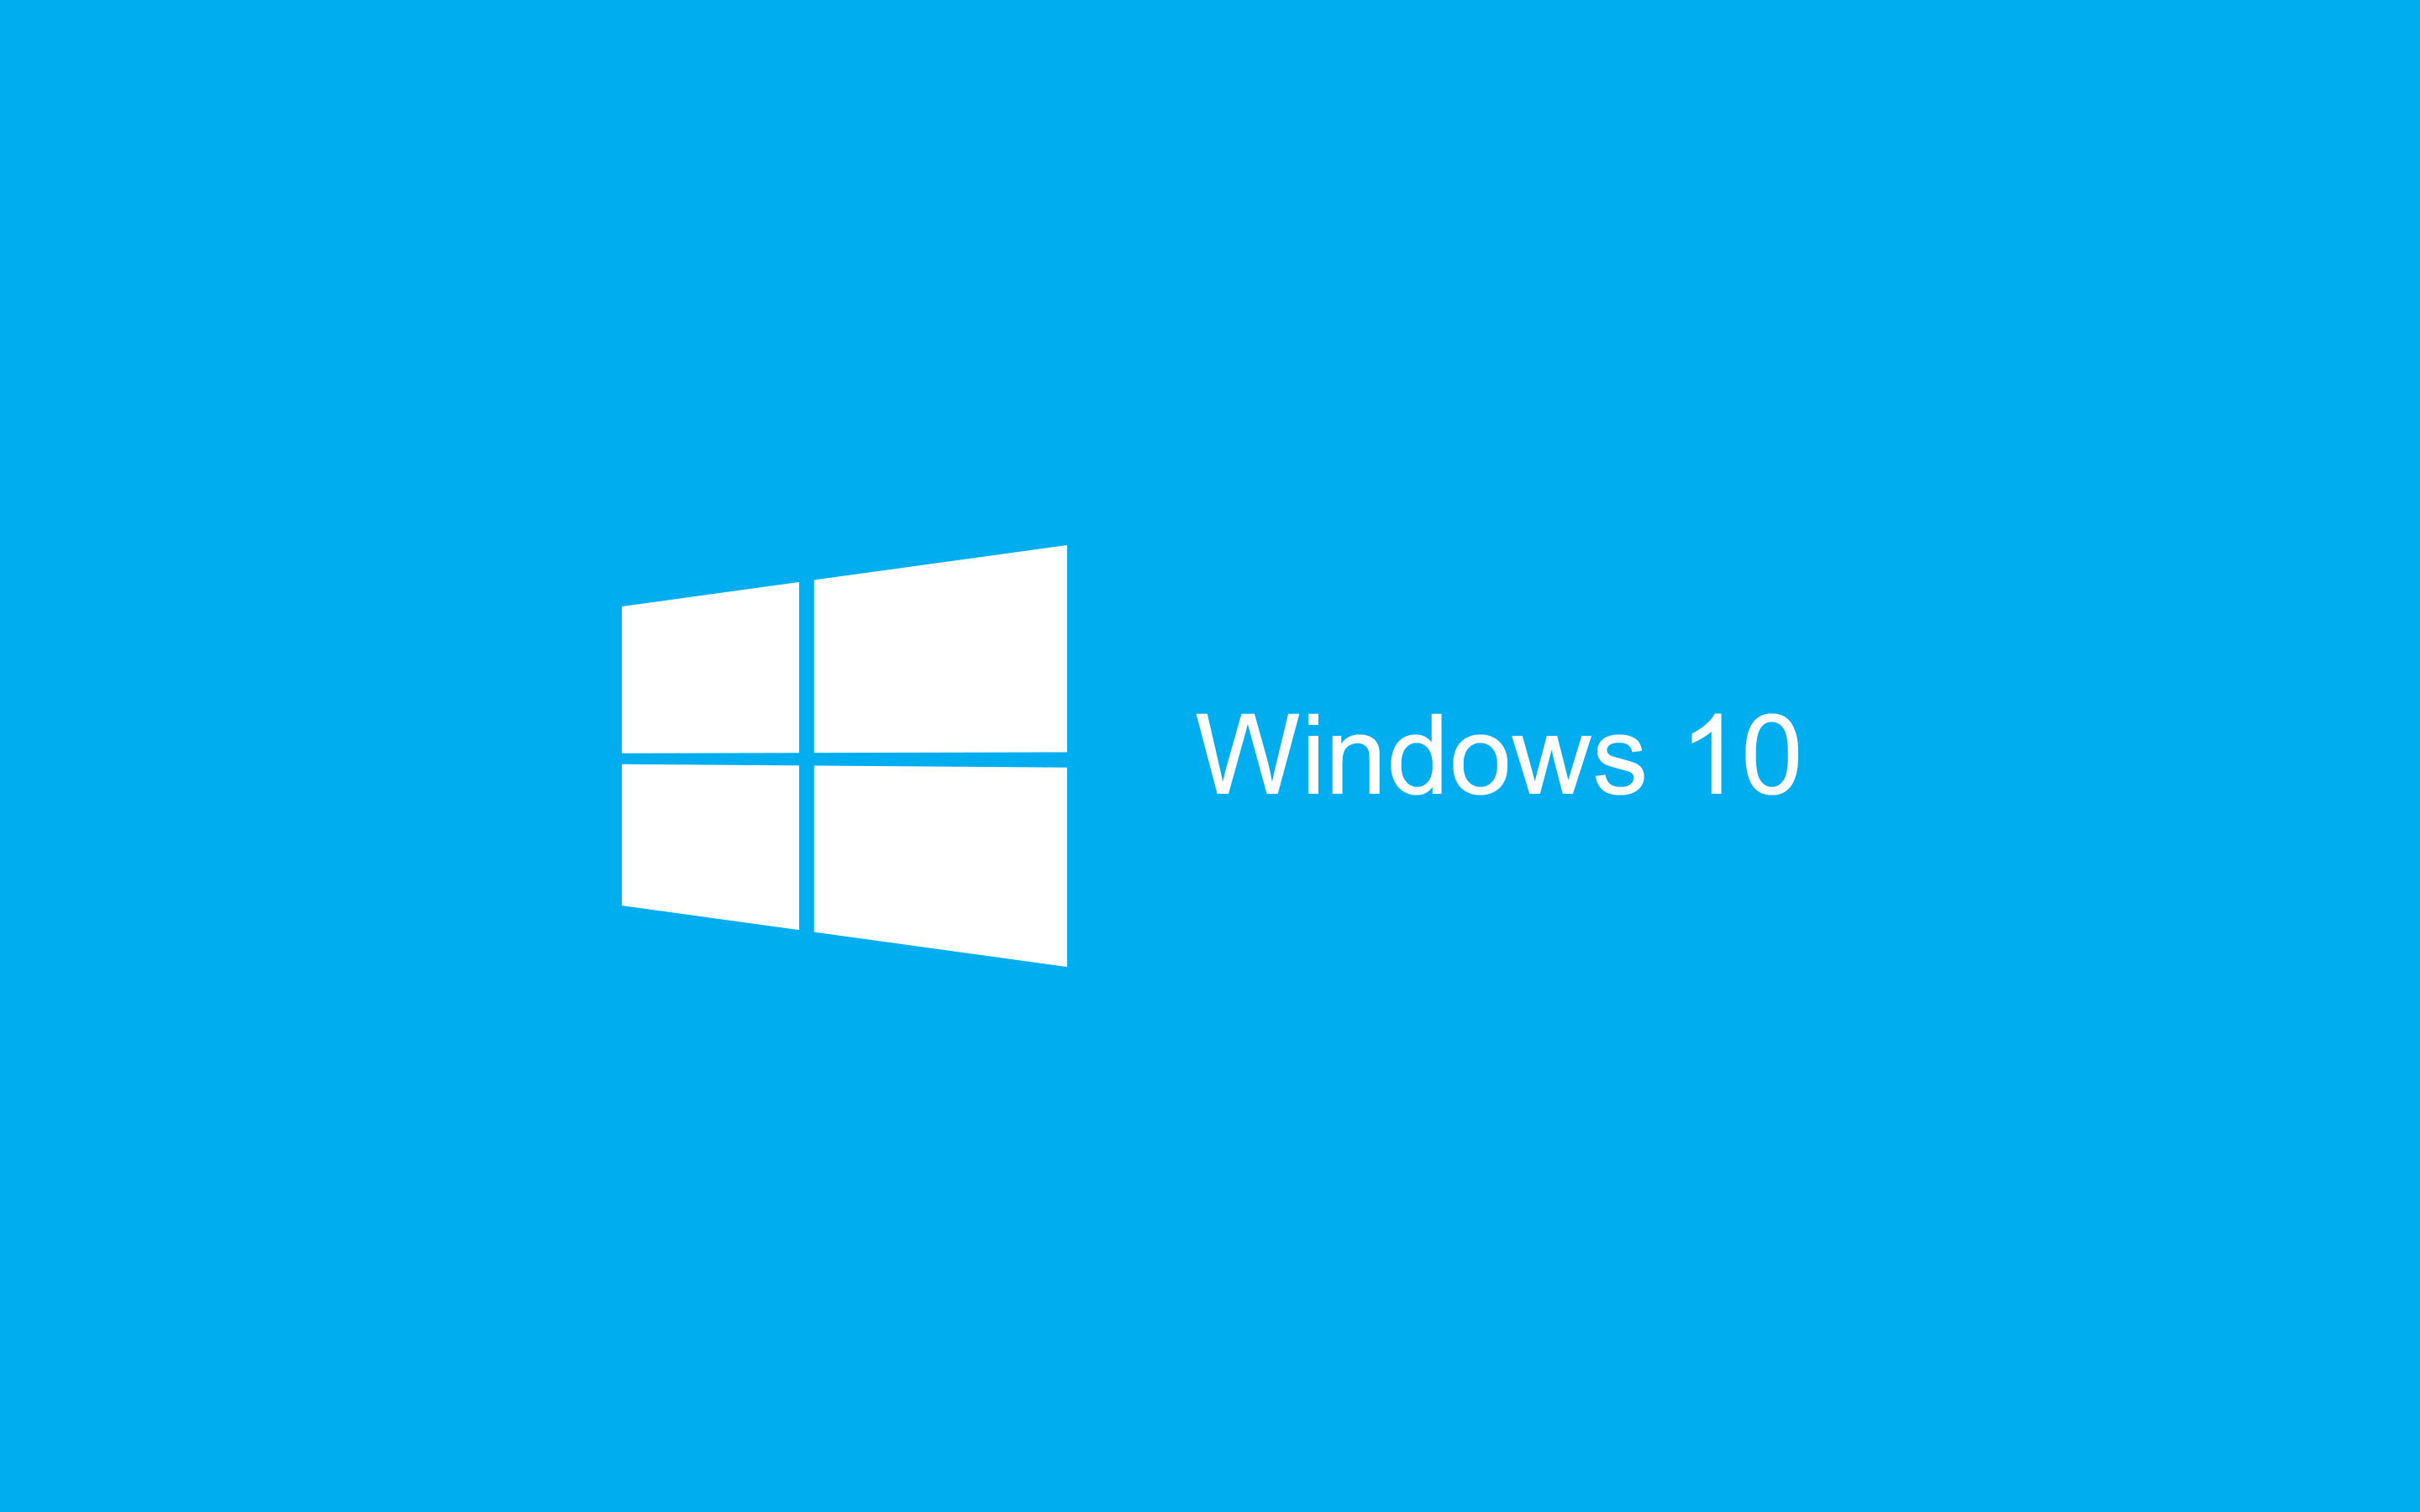 Windows 10 update and incompatibility issue with Trend Micro